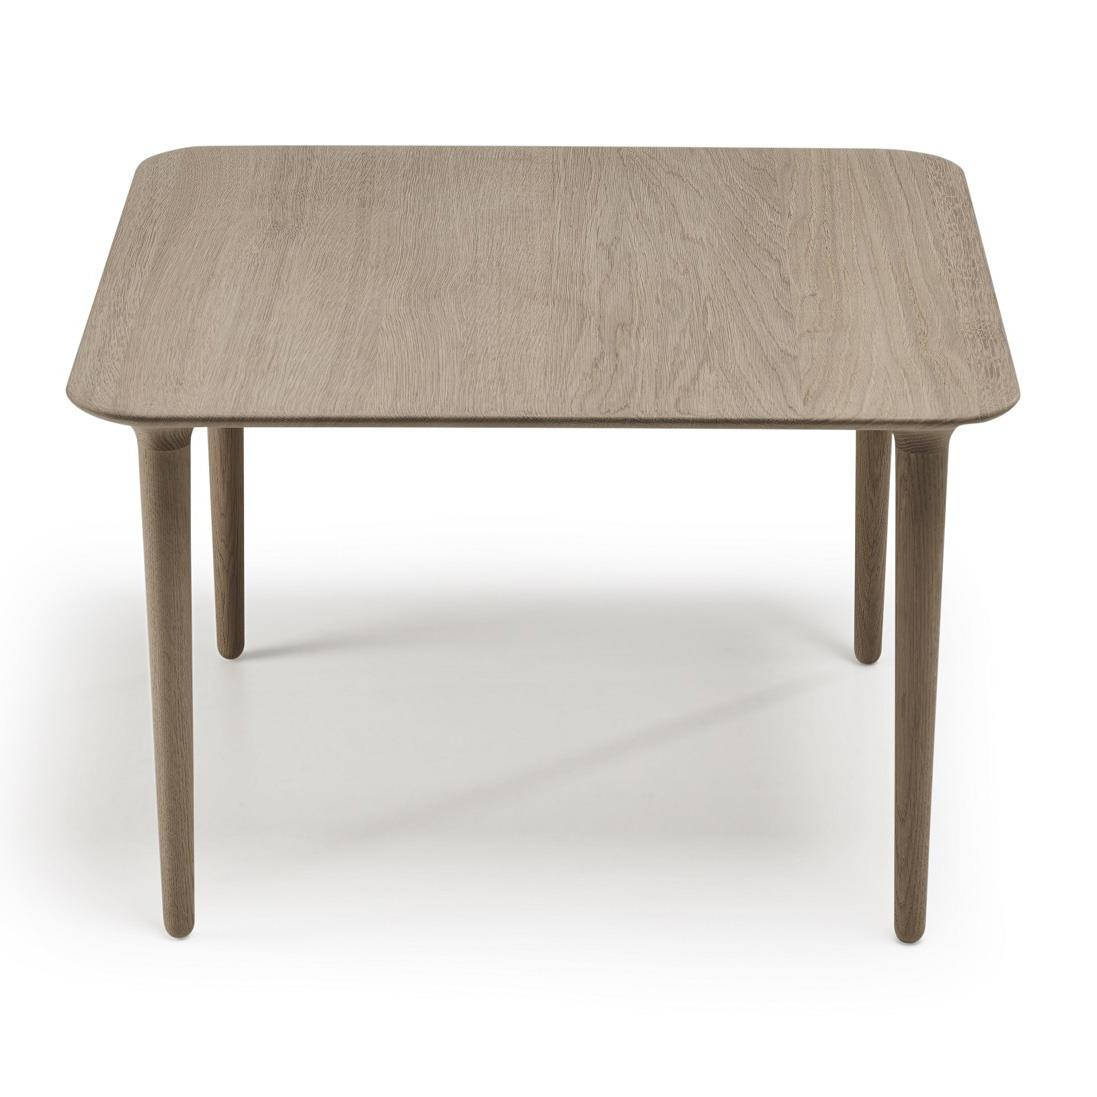 Evja Coffee Table. Eik Såpebehandlet. 70x70cm. H50cm.